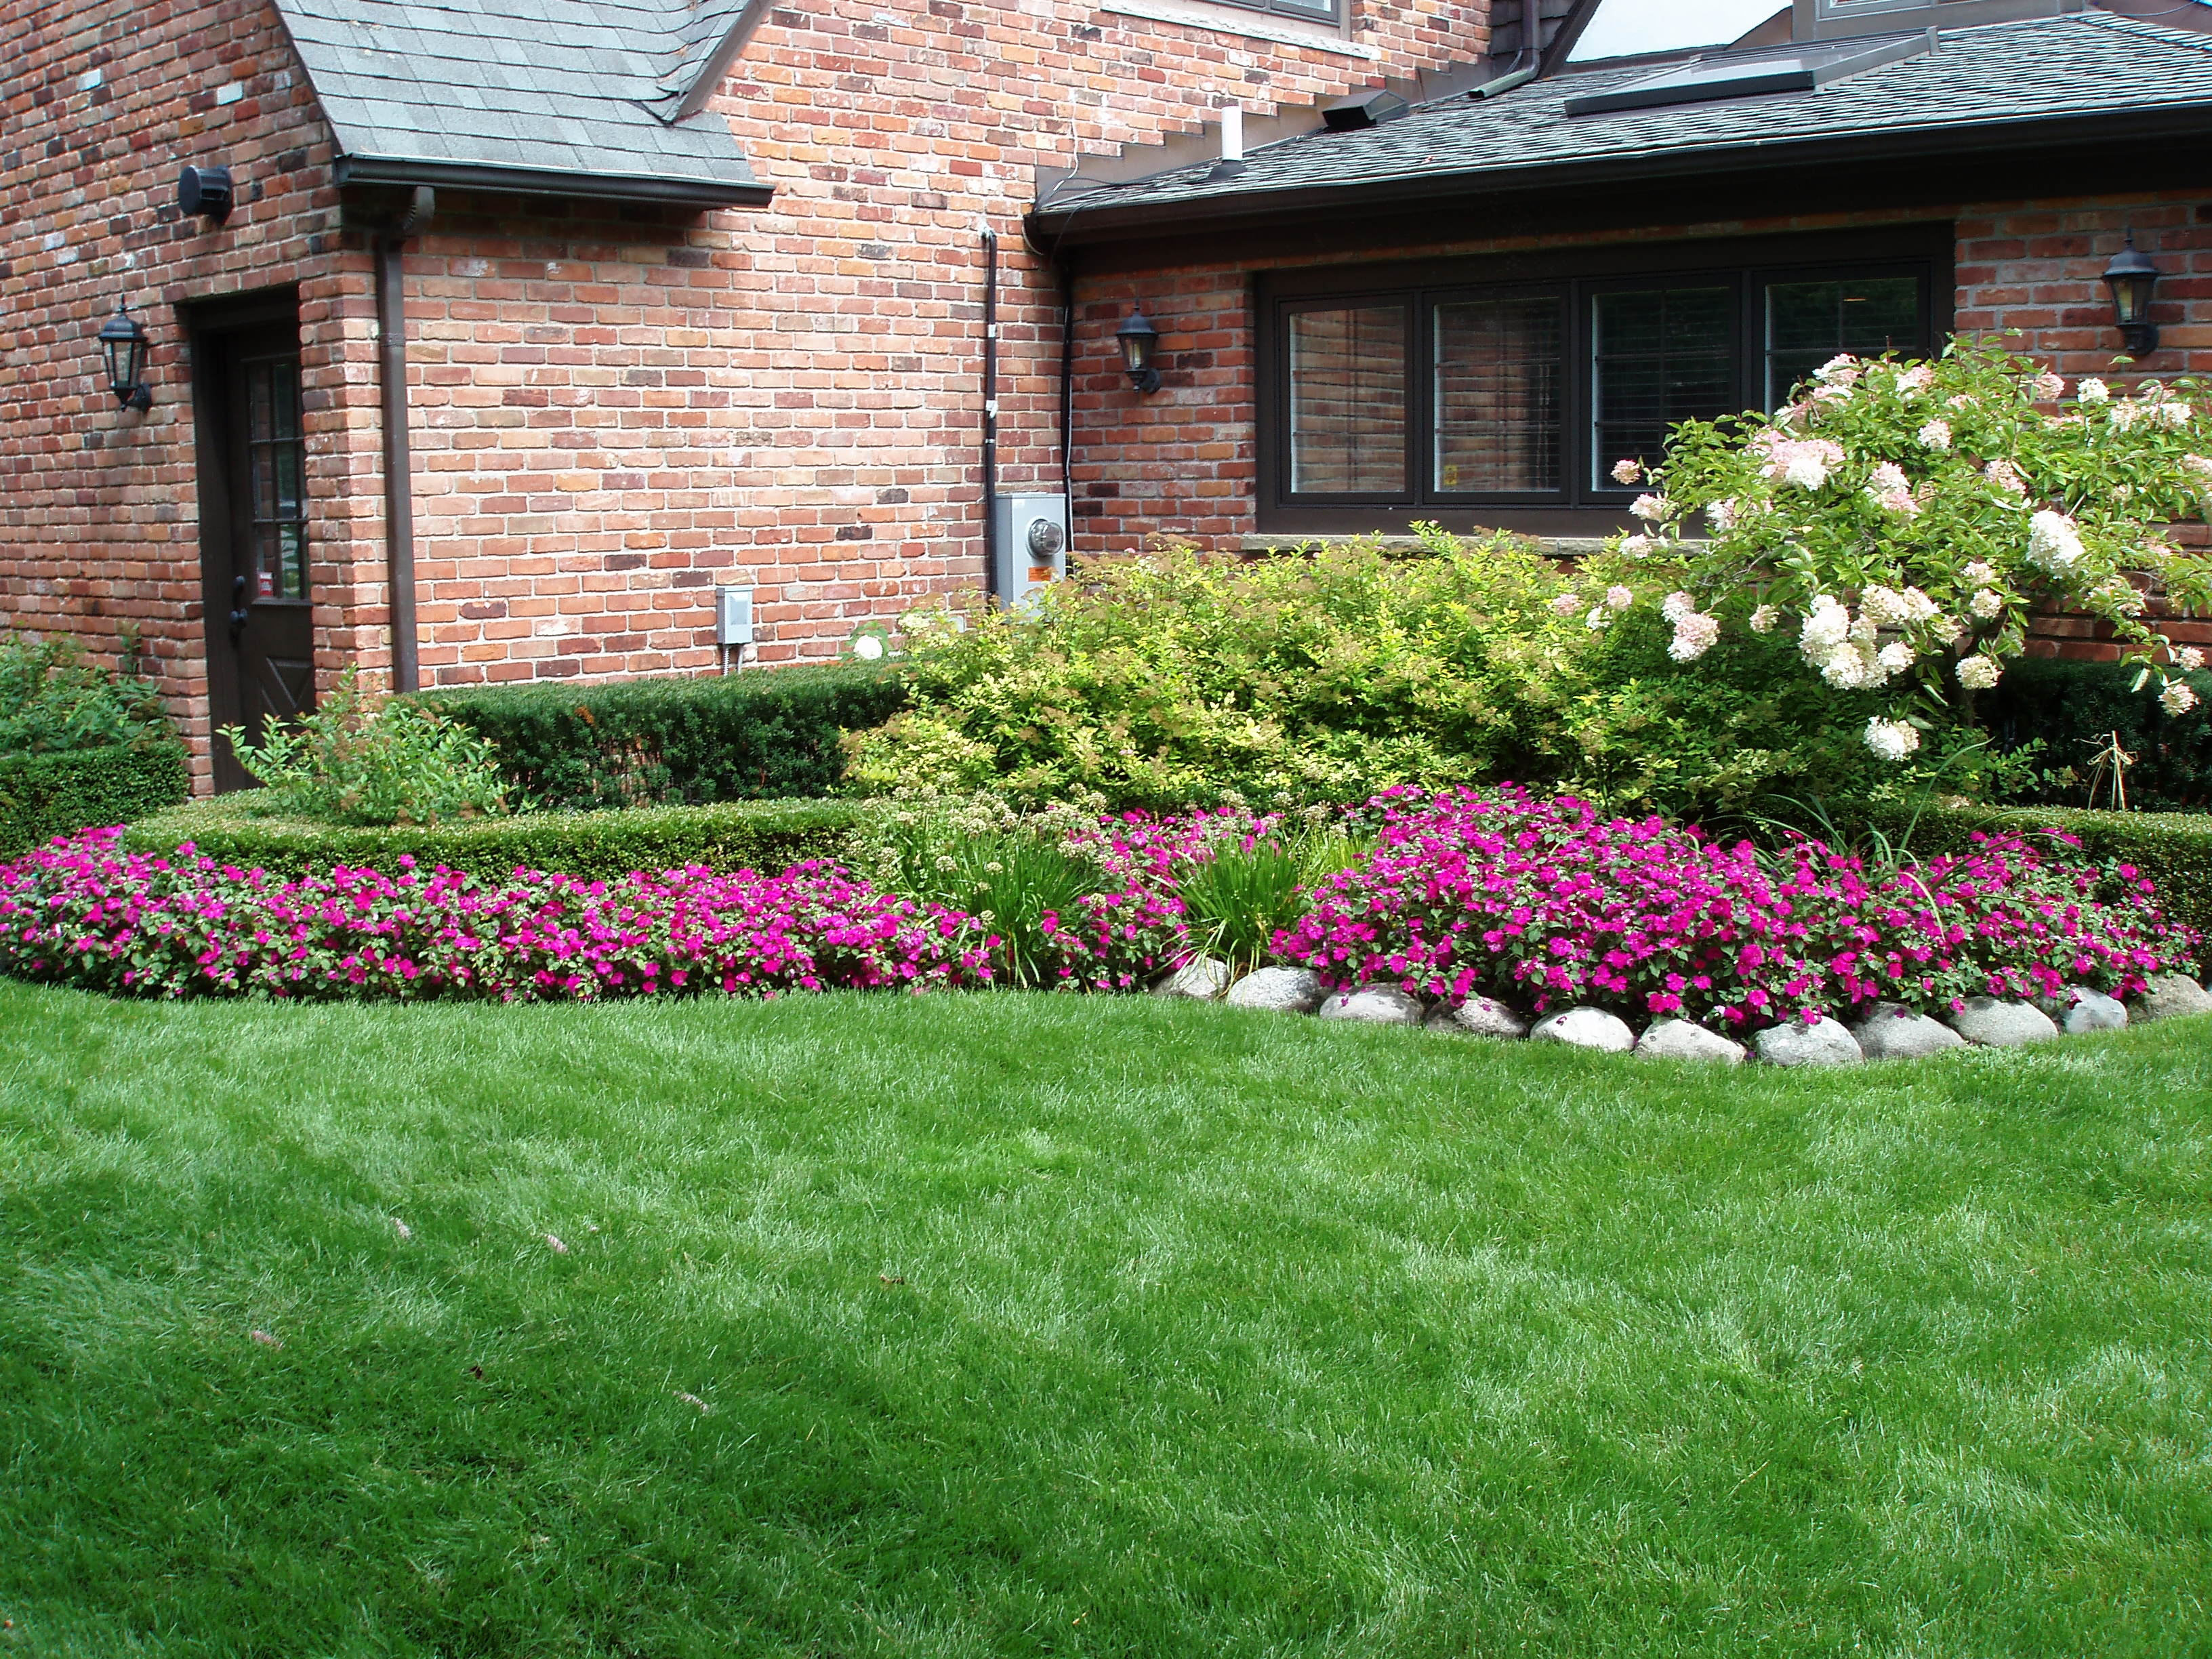 Landscaping total lawn care inc full lawn maintenance for Lawn and garden ideas